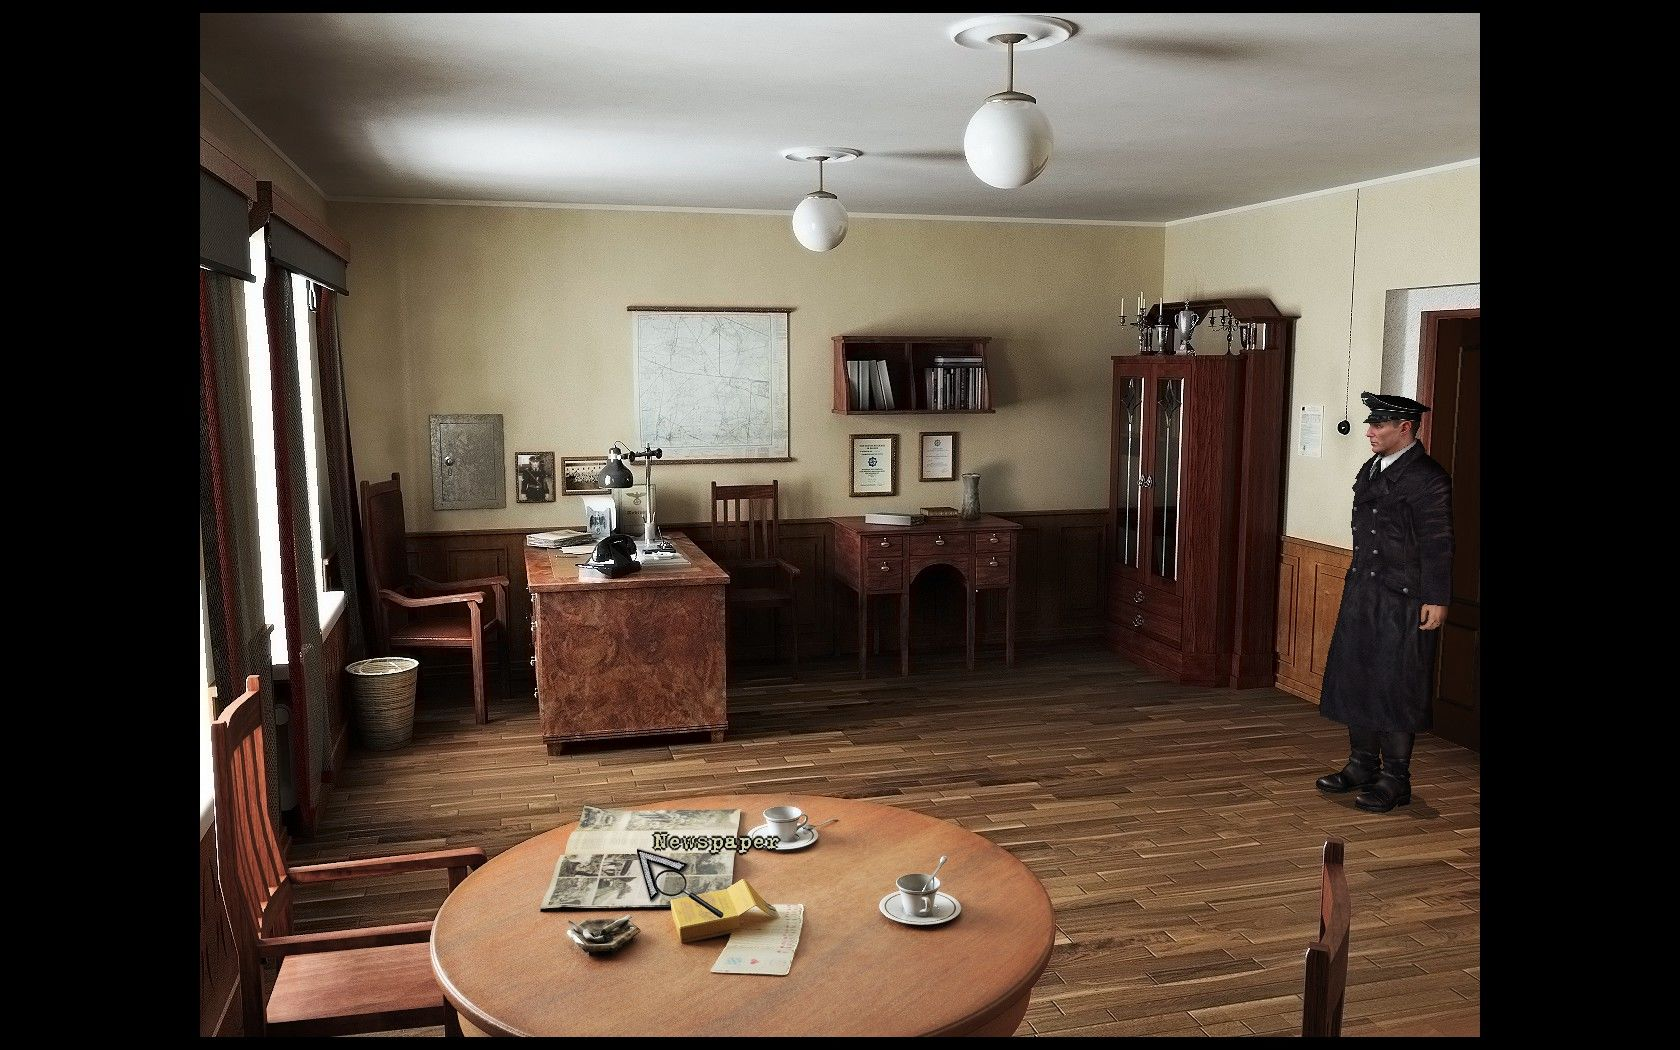 A Stroke of Fate: Operation Valkyrie Screenshots (Windows)Discuss Review + Want + Have Contribute